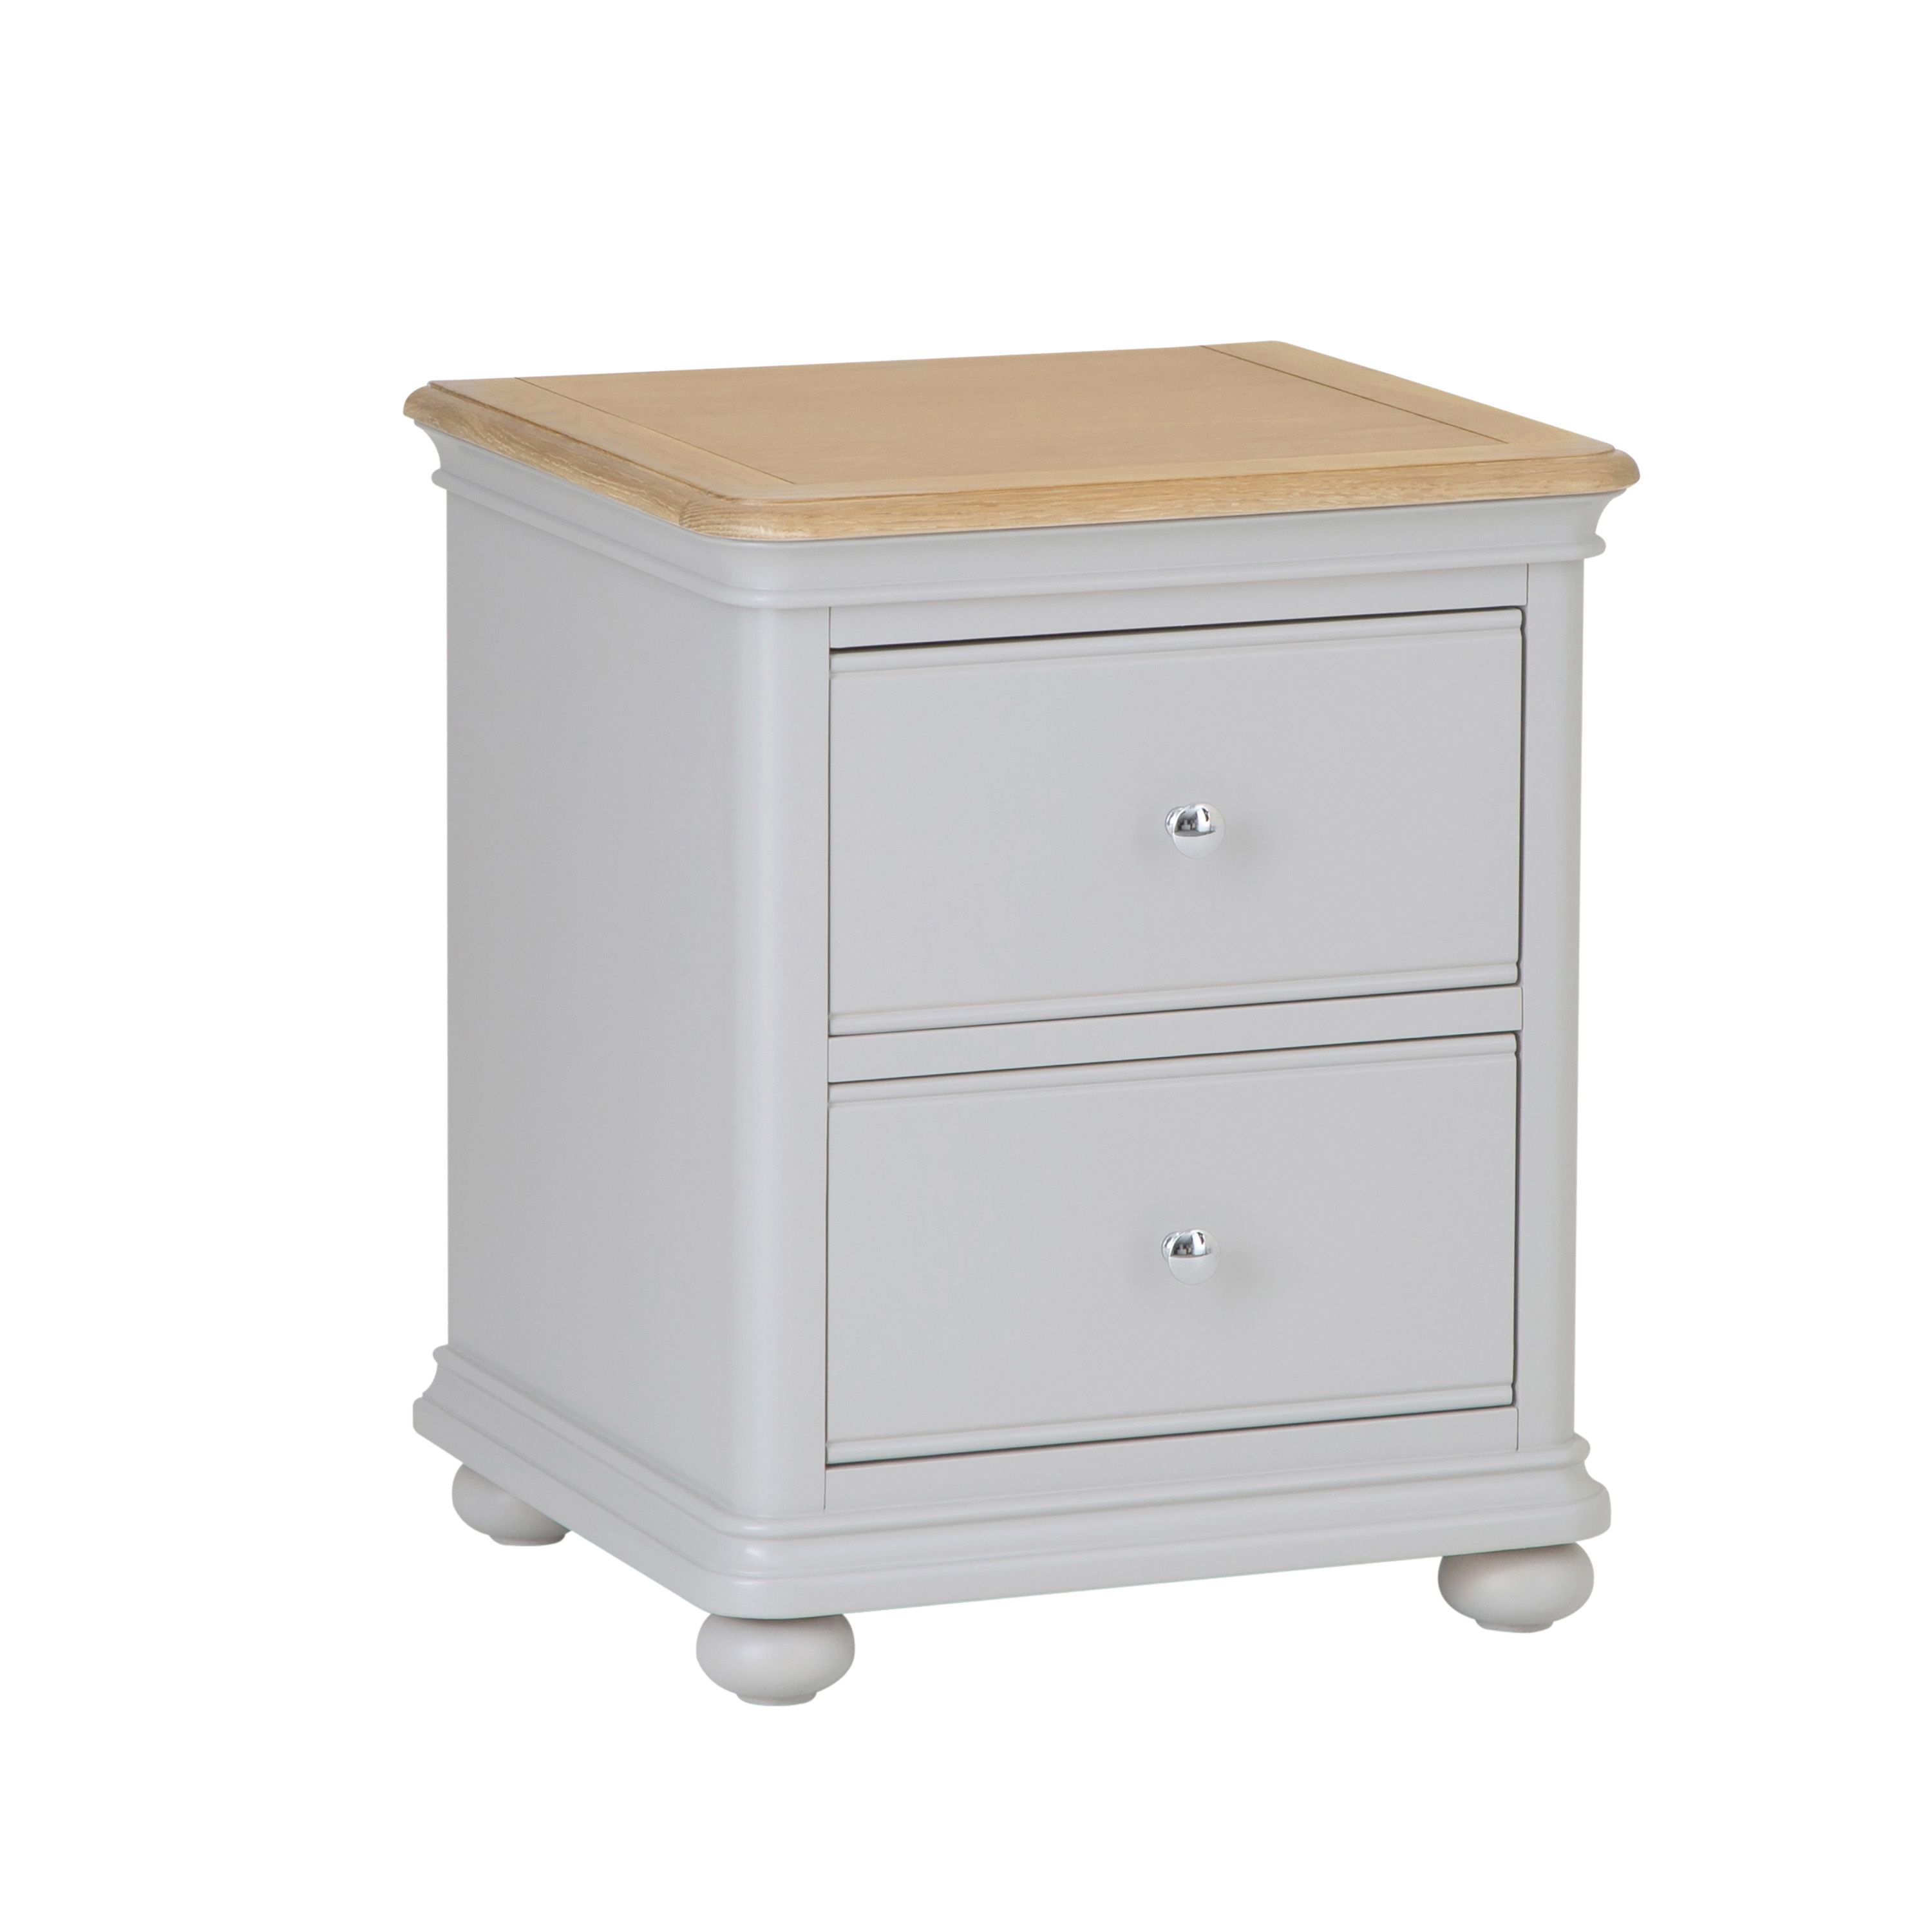 MAINE - 2 Drawer Bedside Cabinet